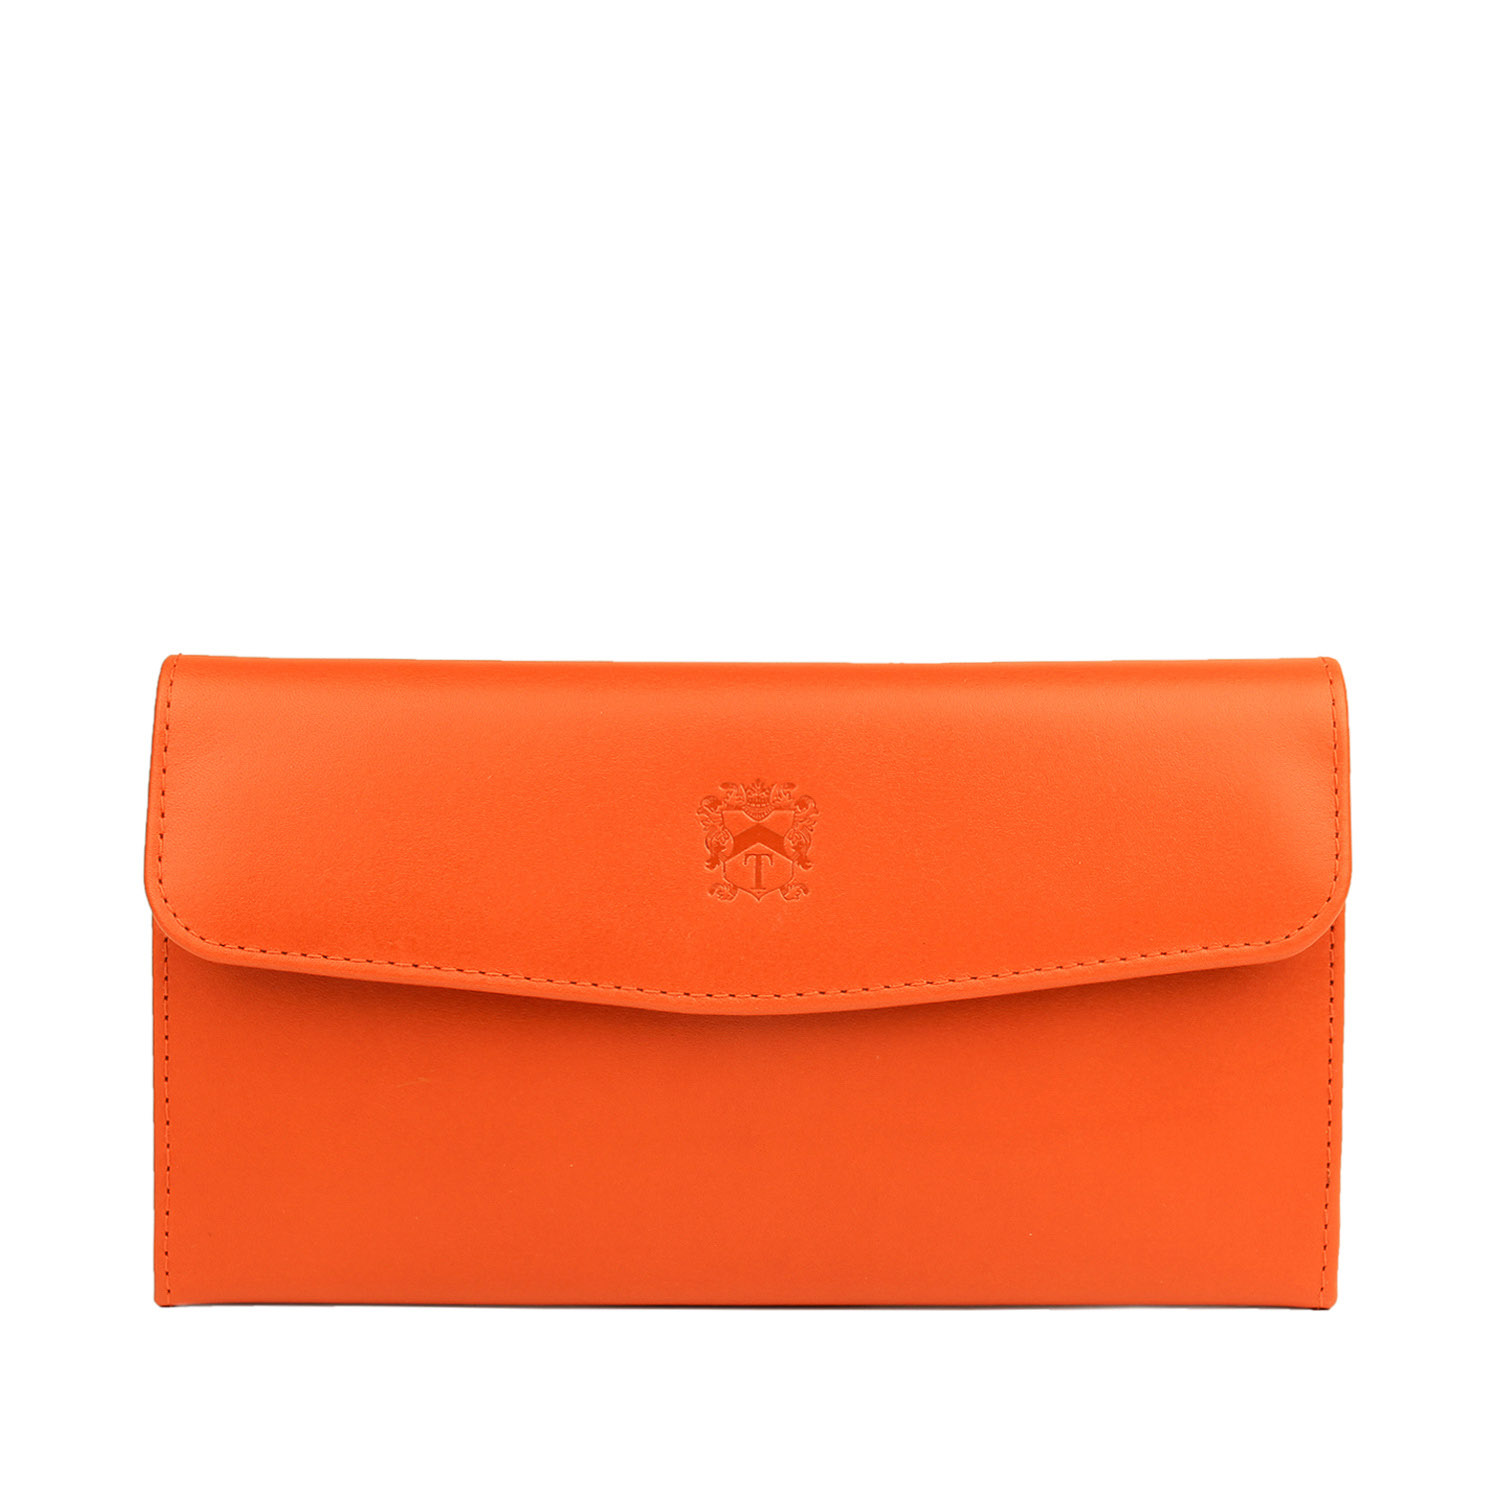 The Tusting Fold Purse in delicious Honeydon Orange